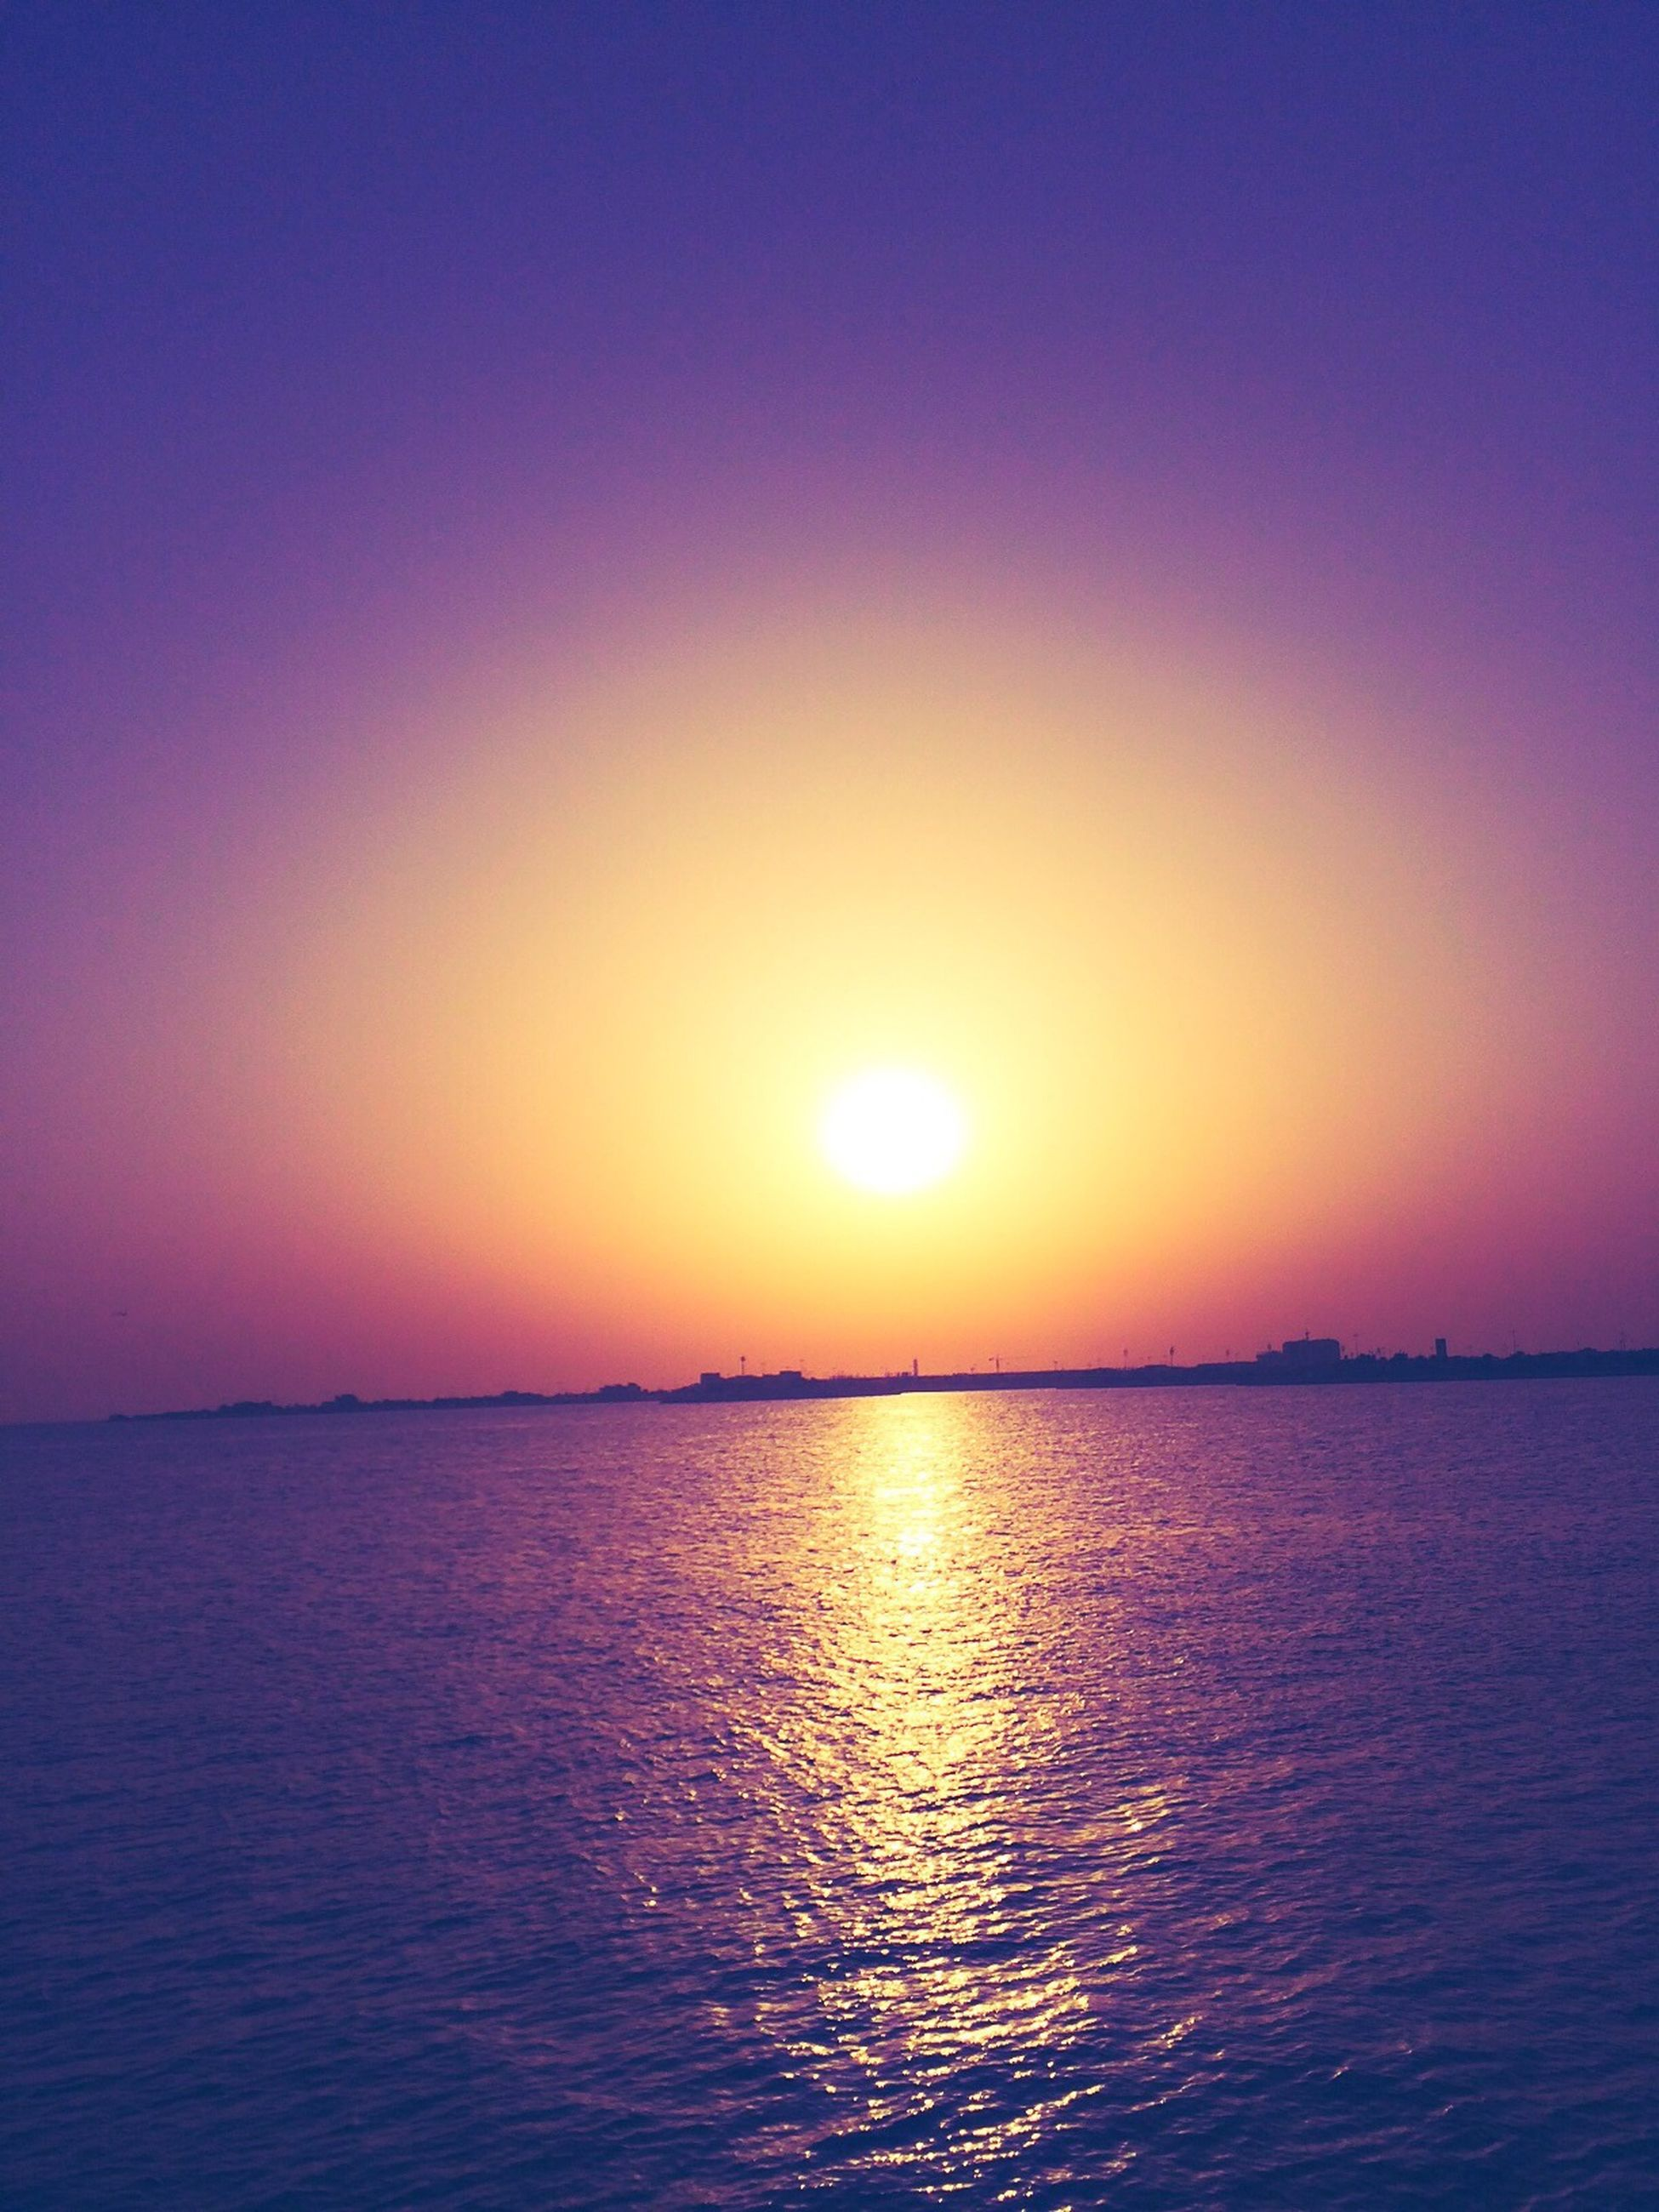 water, sunset, waterfront, sun, sea, tranquil scene, scenics, tranquility, beauty in nature, reflection, horizon over water, rippled, idyllic, orange color, copy space, nature, clear sky, sky, sunlight, blue